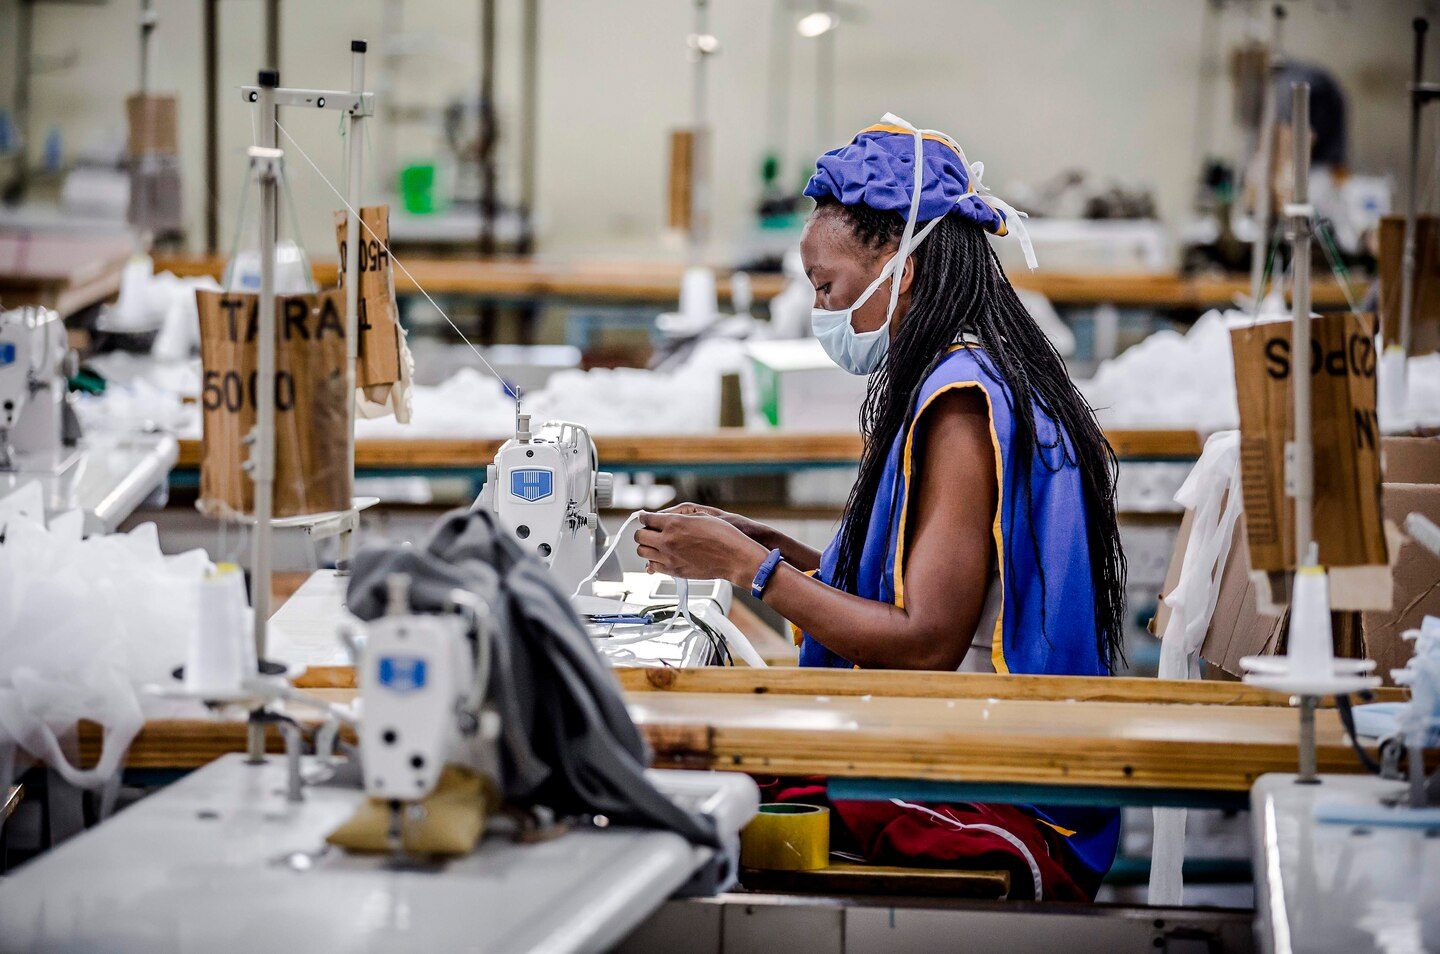 Kitui County Textile Centre ( KICOTEC ) Factory that Transformed into a Surgical Mask Assembly Line Overnight